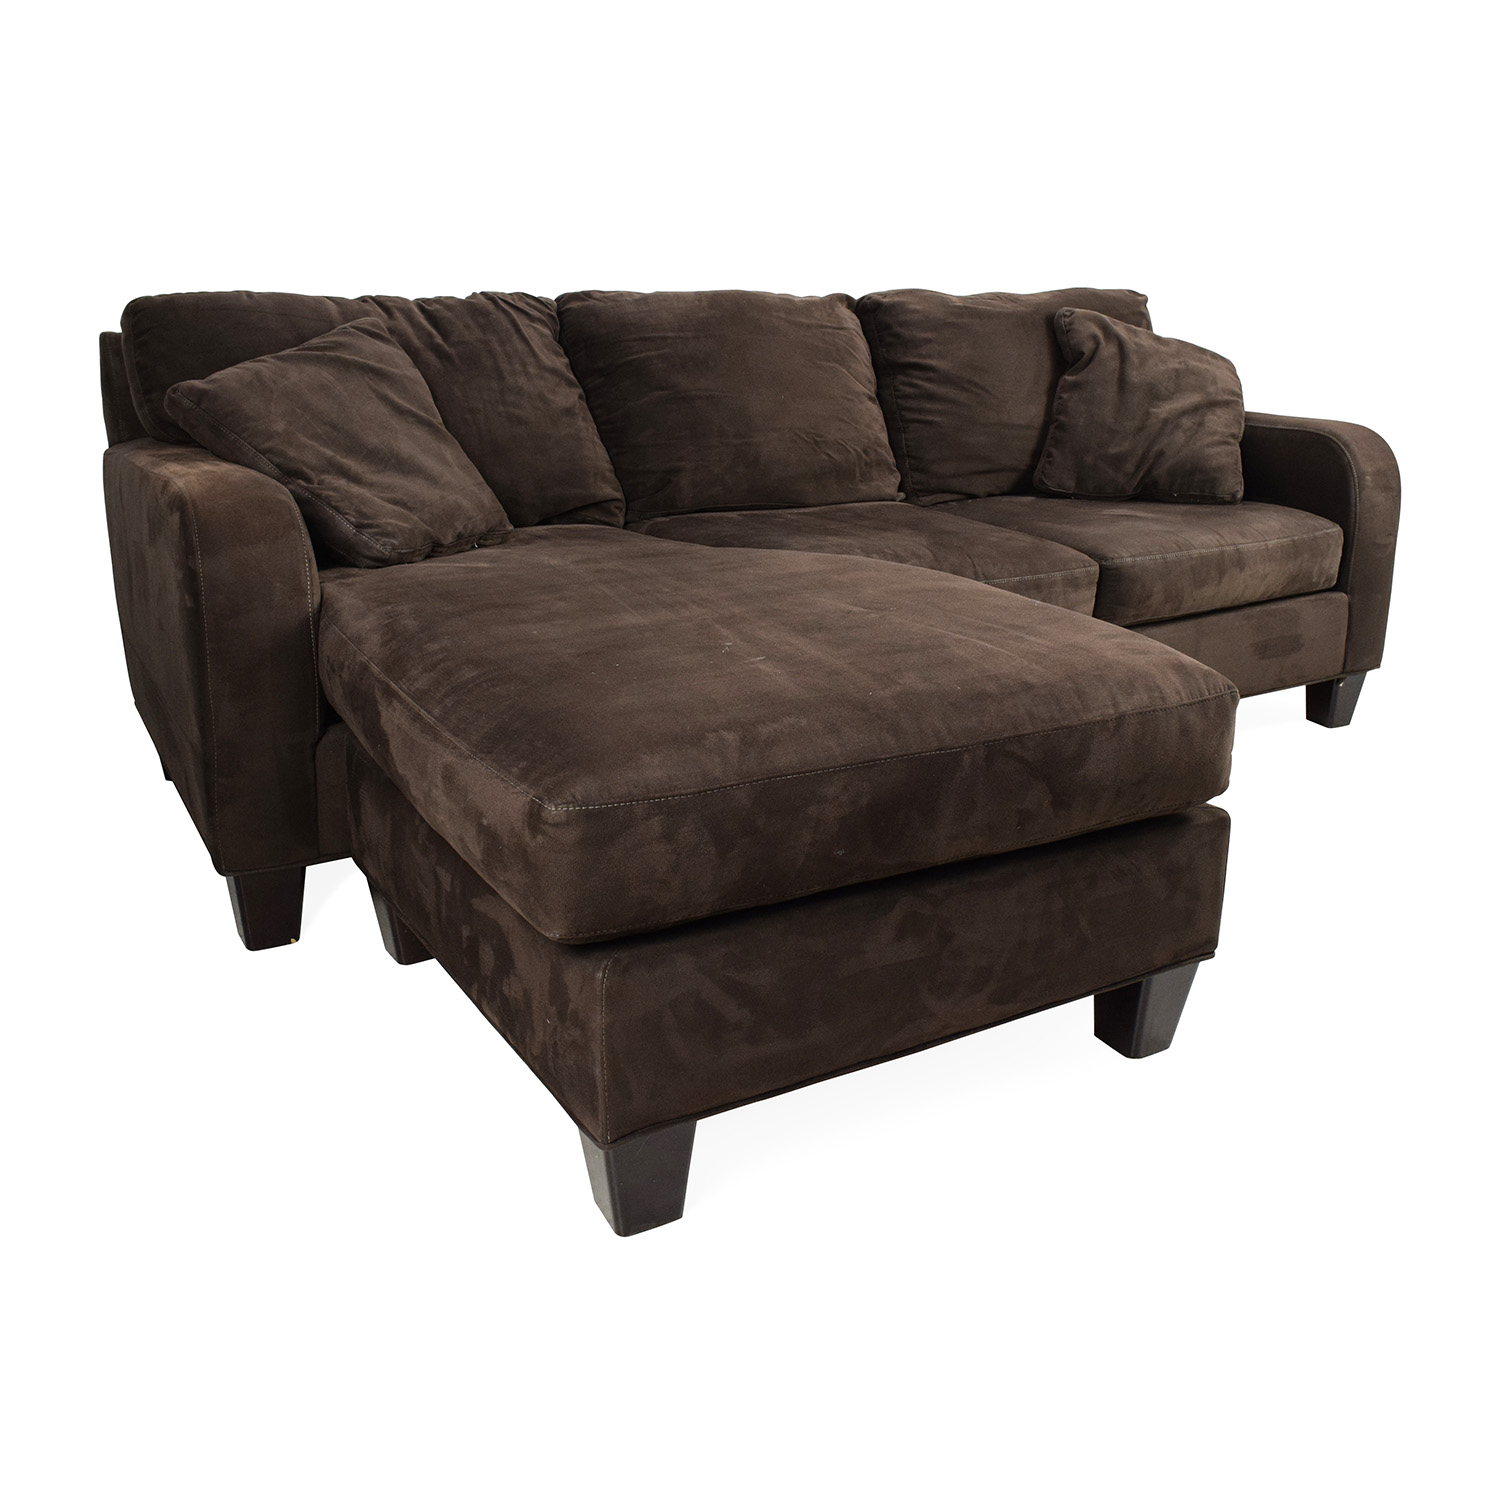 70 Off Cindy Crawford Home Bailey Microfiber Chaise Sofa Sofas